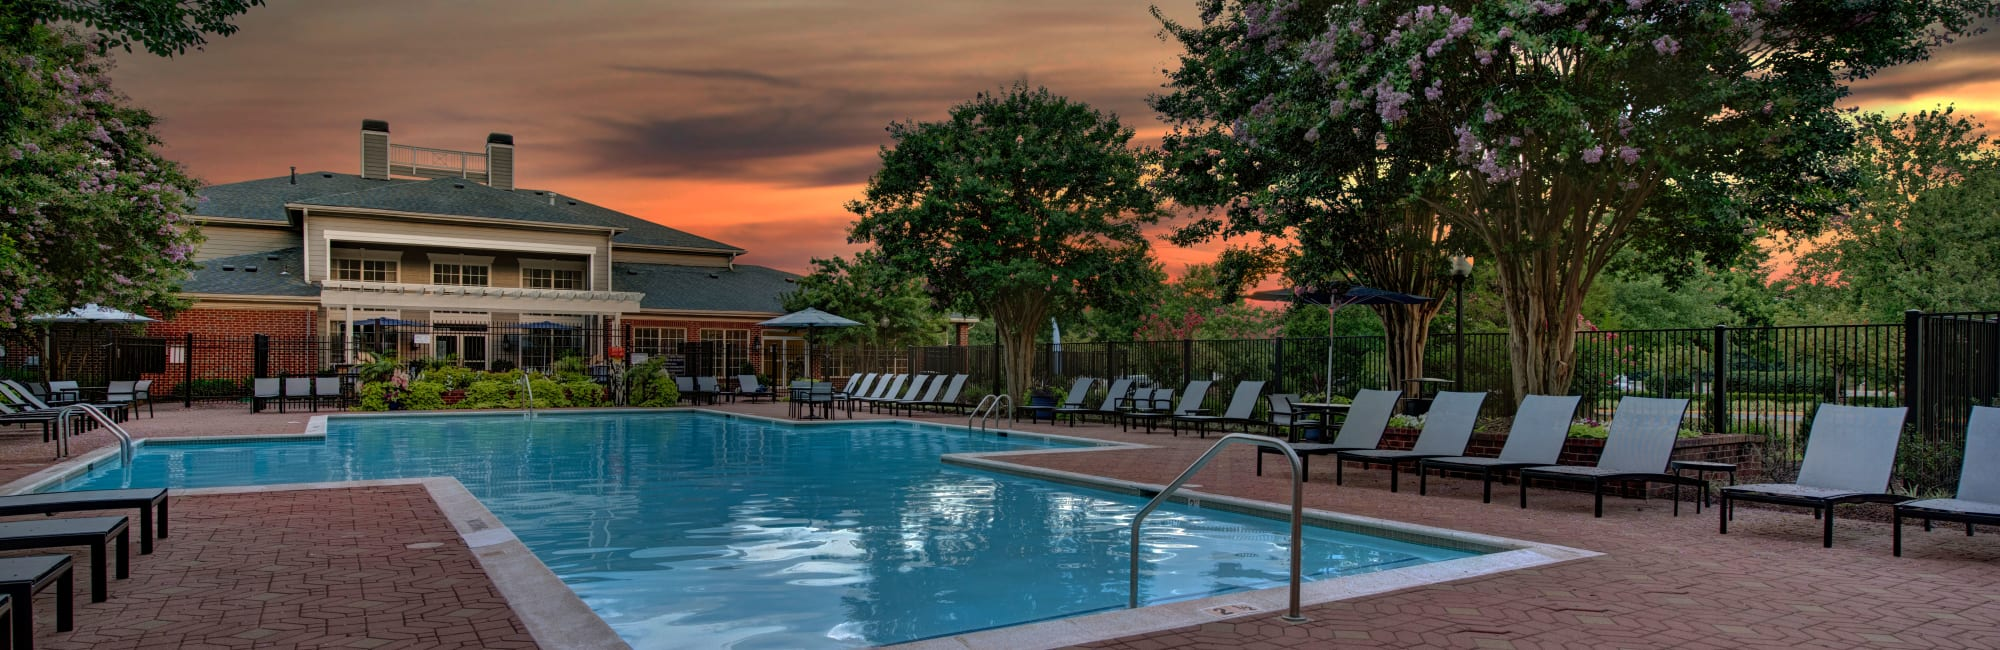 Apartments at Woodway at Trinity Centre in Centreville, Virginia